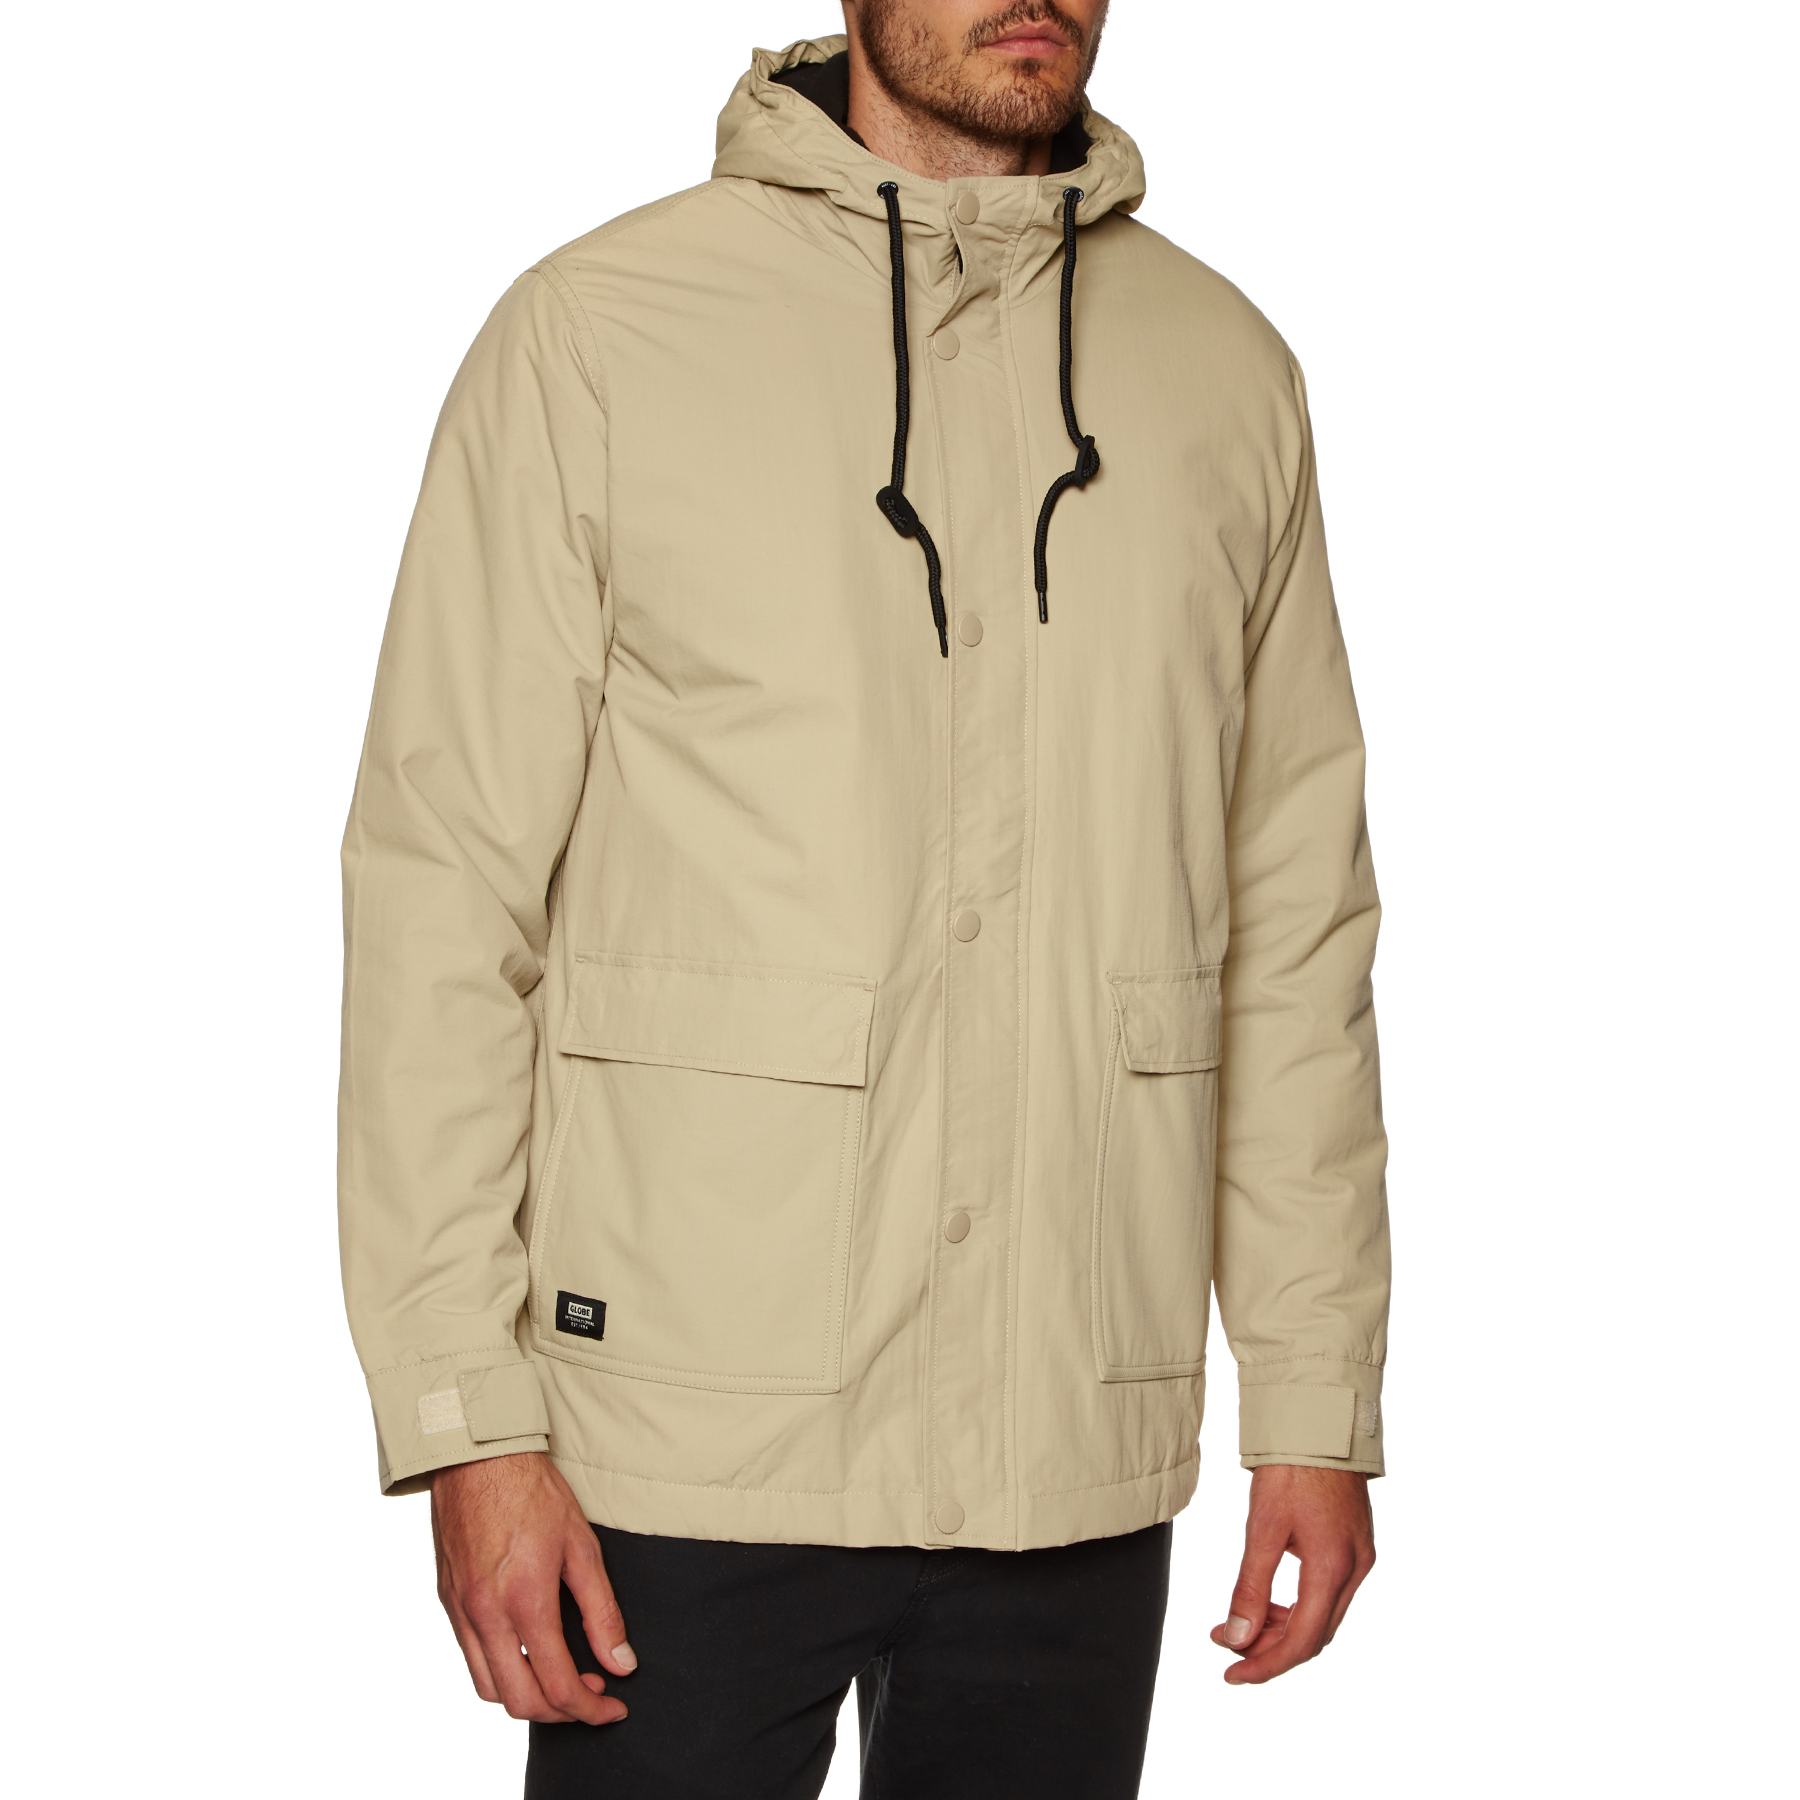 Utility Globe Goodstock Jkt Free Thermal Jacket Delivery